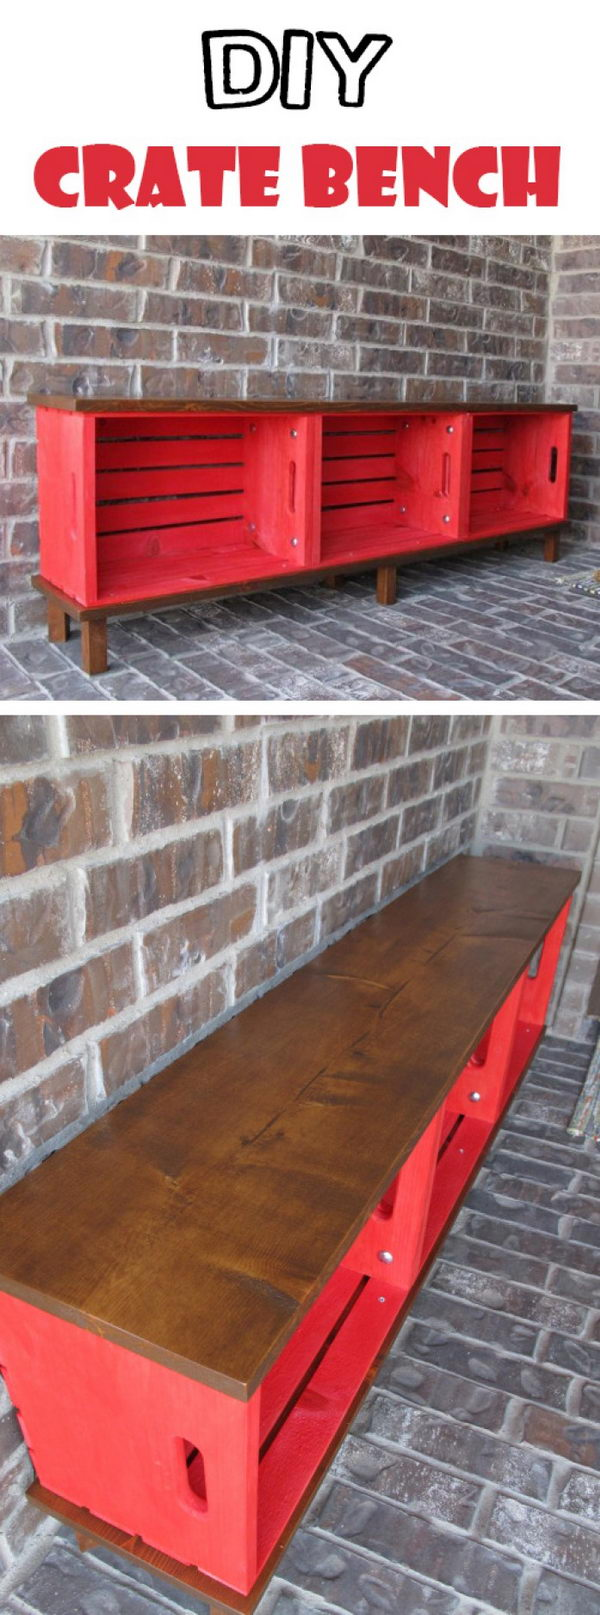 DIY Crate Bench.